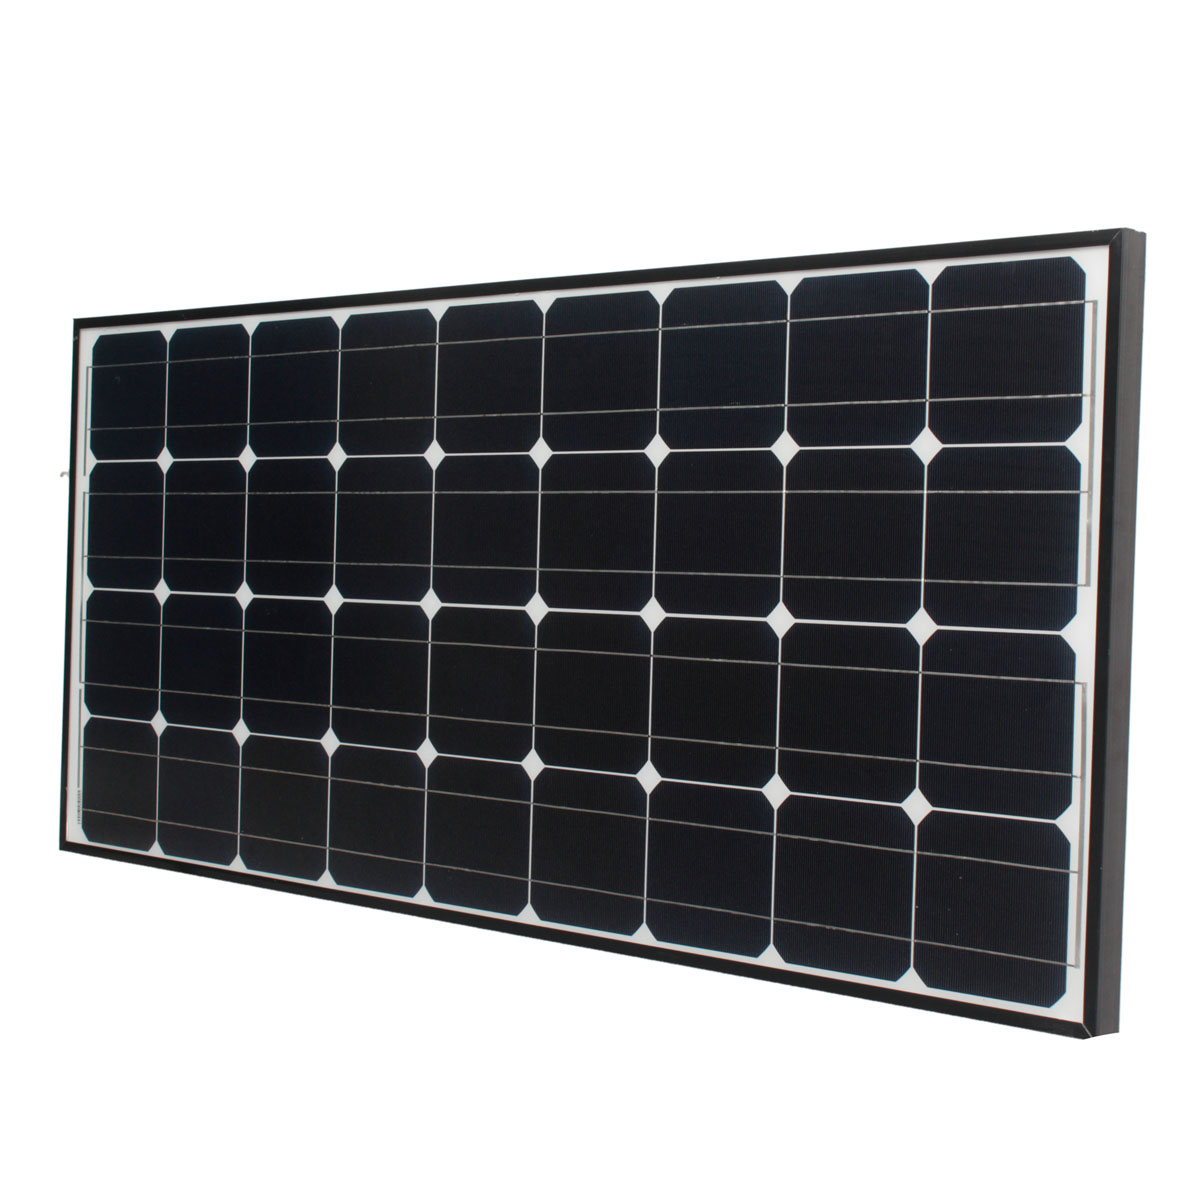 KINCO 30w 18v Monocrystalline Silicon Solar Panels High Conversion Efficiency DIy Solar Panel Battery With Silver/Black Frame 50w 12v semi flexible monocrystalline silicon solar panel solar battery power generater for battery rv car boat aircraft tourism